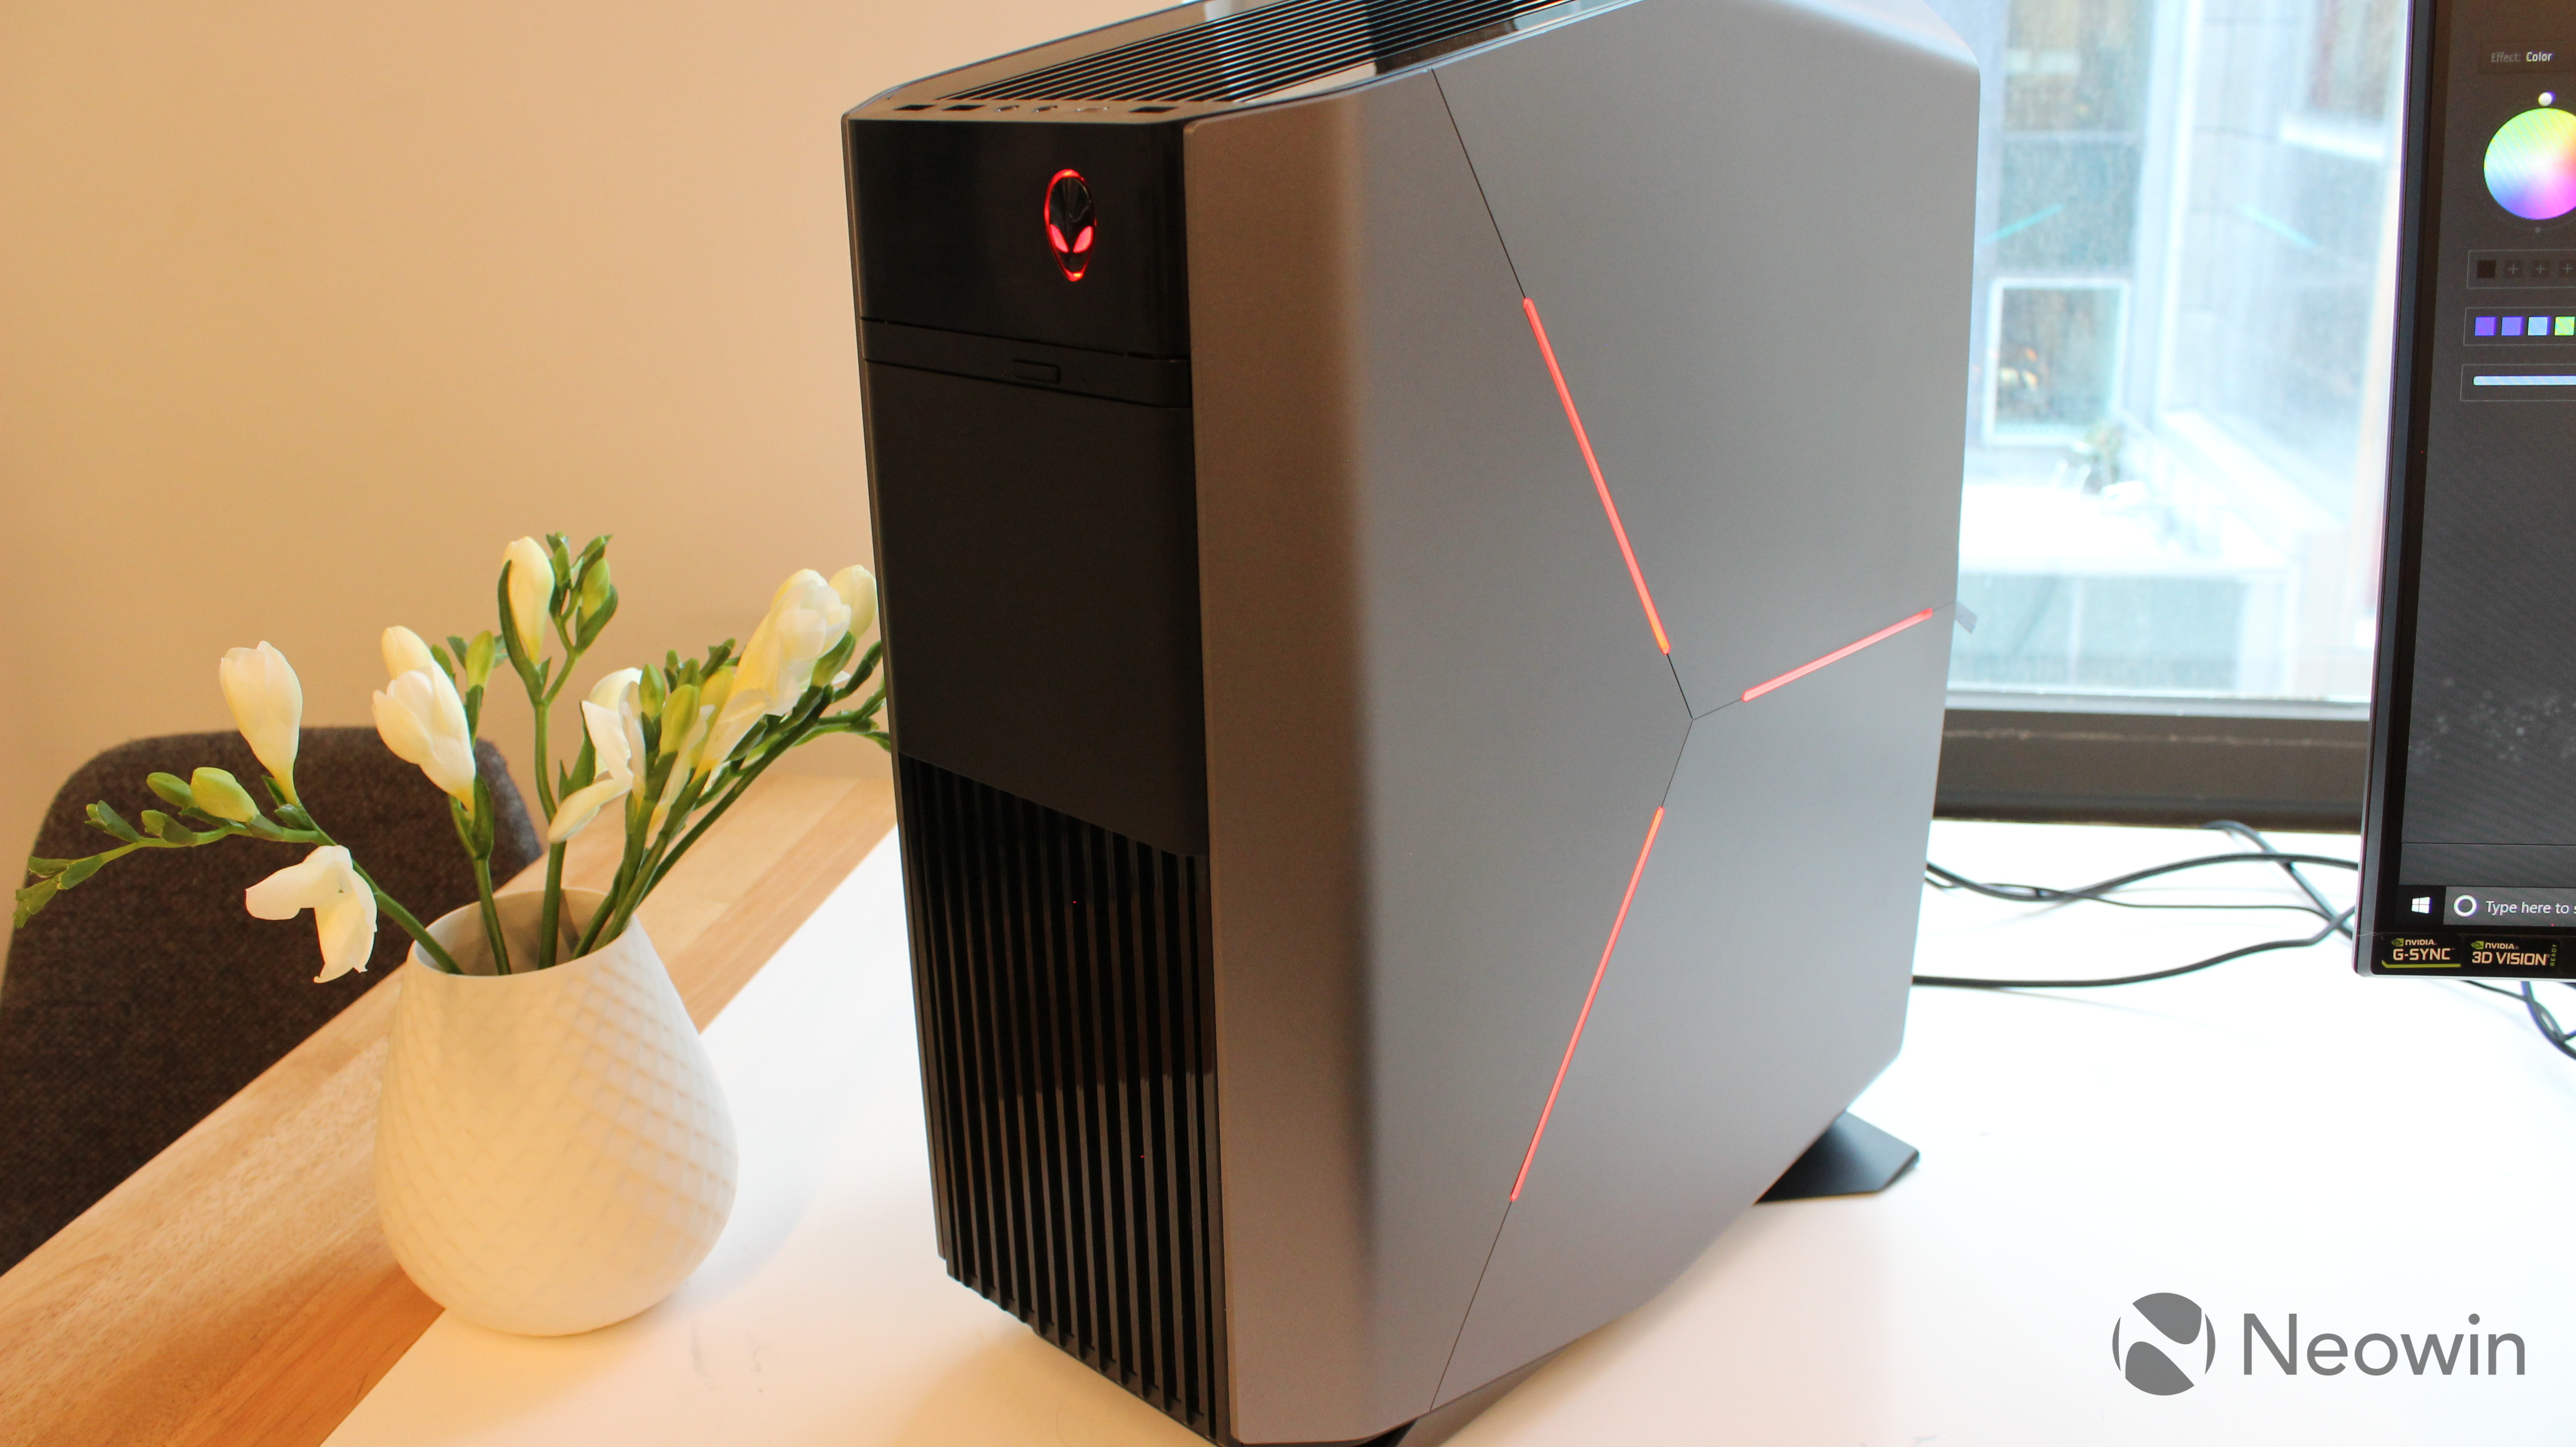 TechBargains: Great savings with Amazon's Gold Box and many